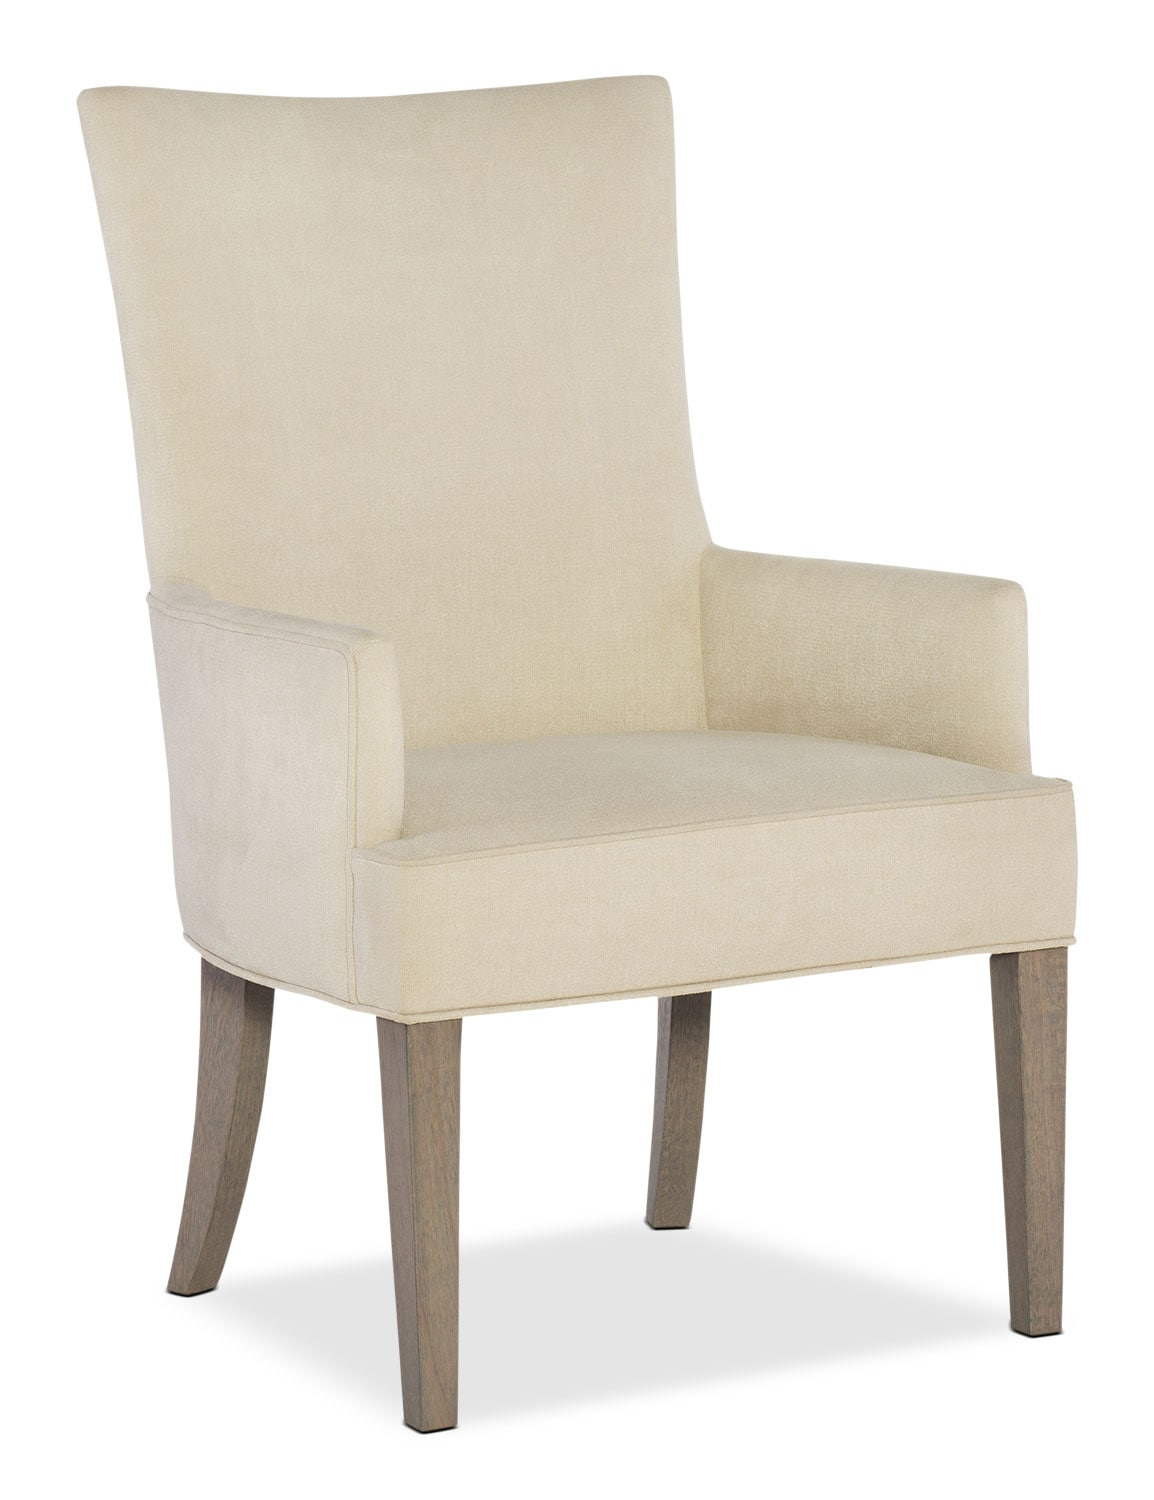 Rachael Ray Highline Upholstered Host Chair - Greige